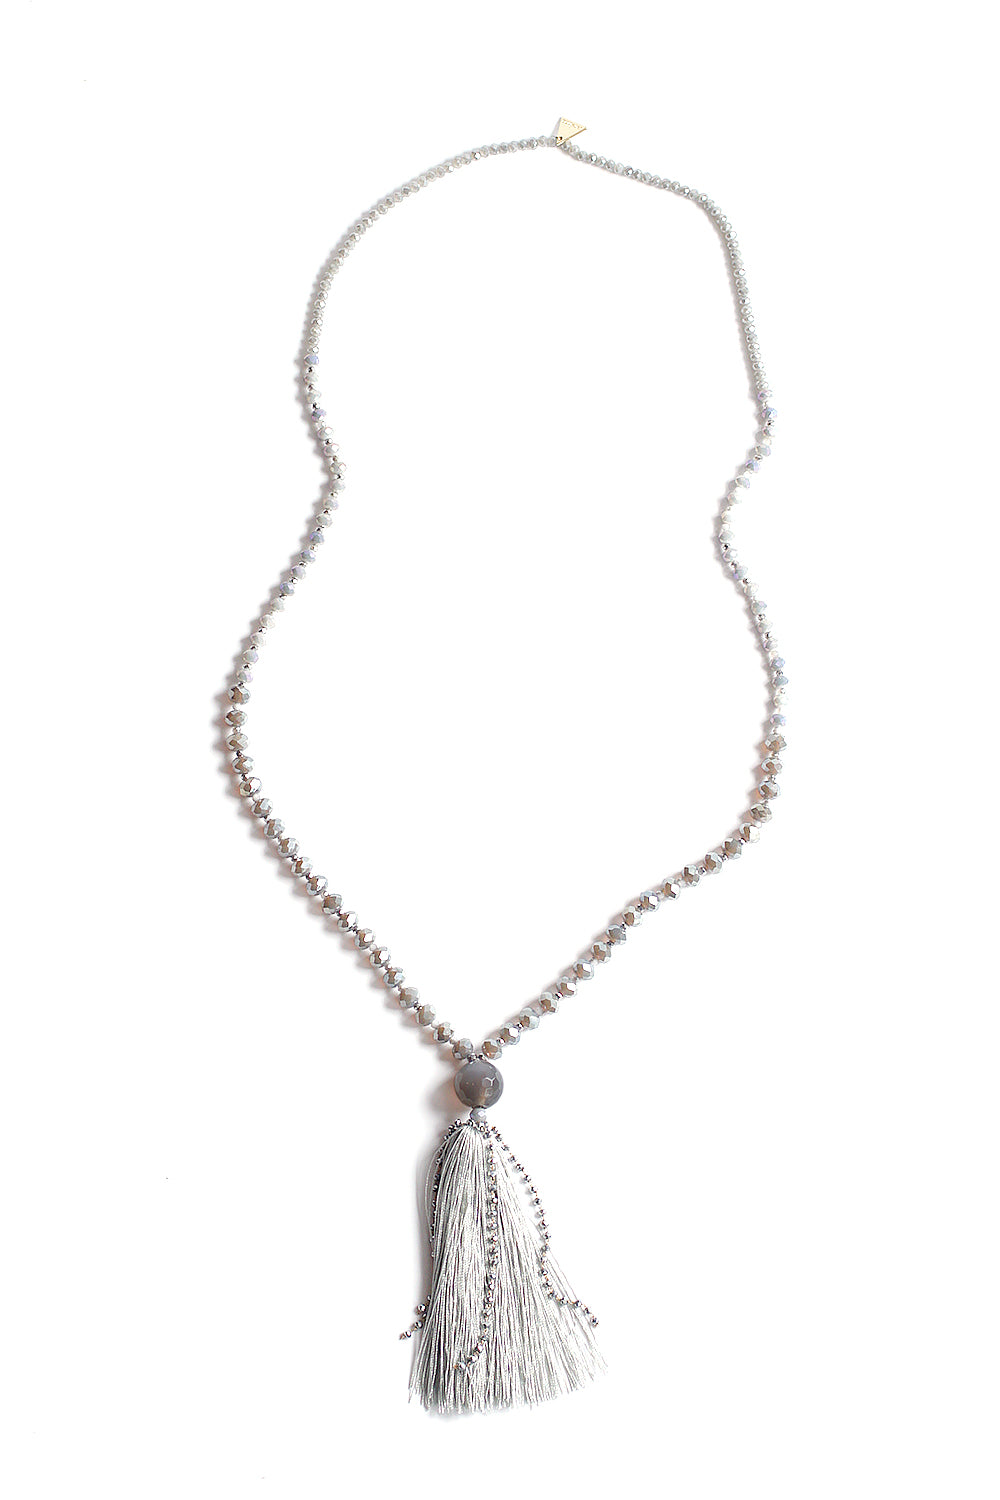 Crystal Tassel Necklace - Dove